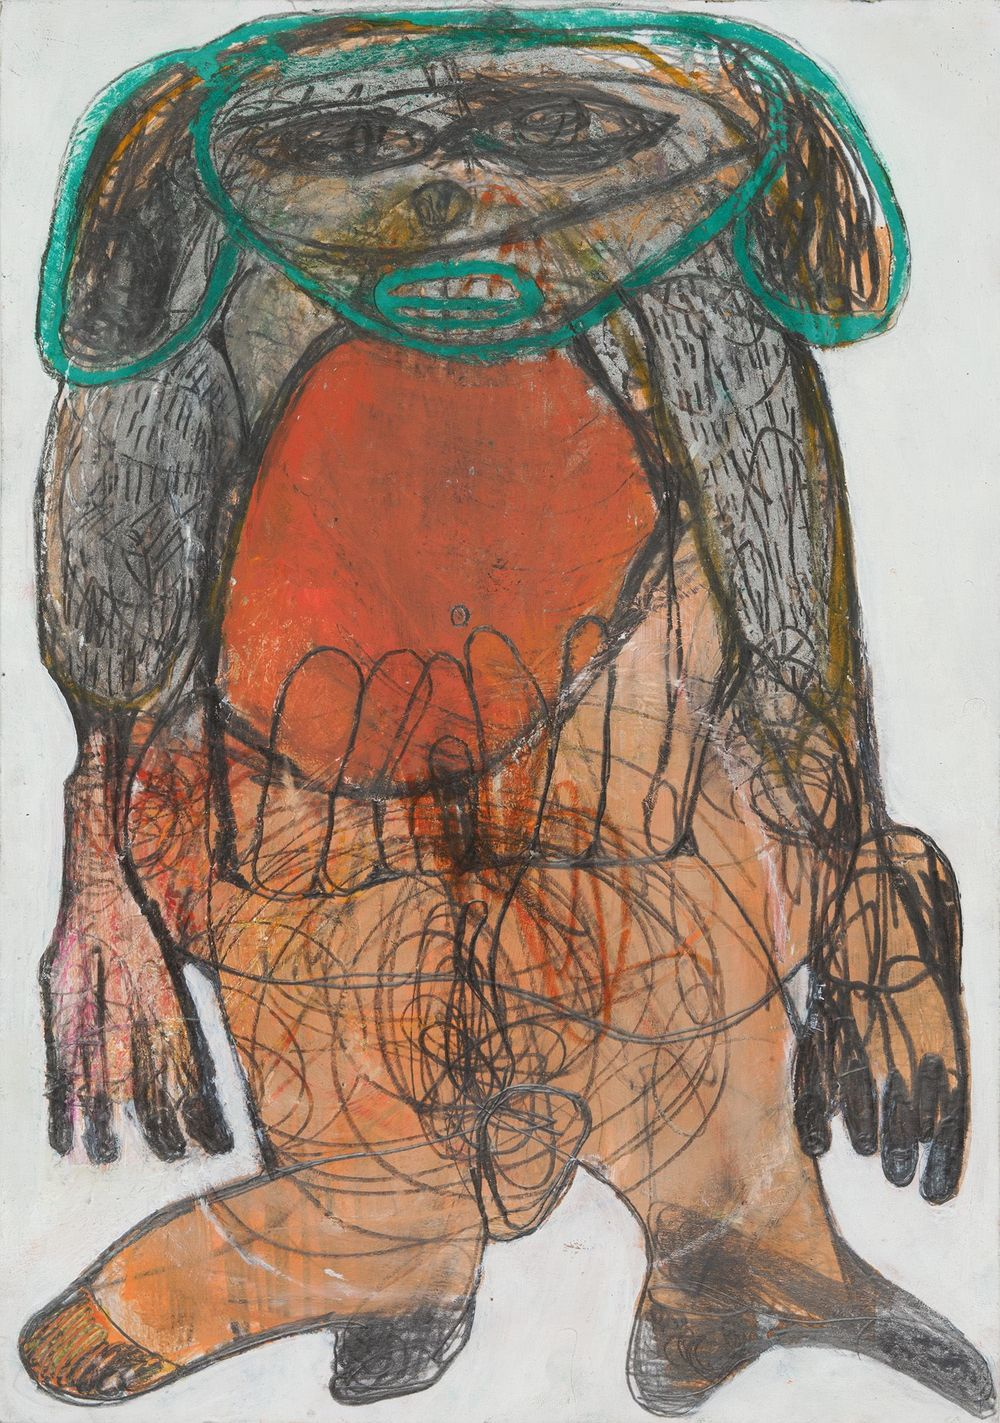 Caroline Demangel    Untitled  , 2014 Mixed media on paper 11.75 x 8.25 inches 29.8 x 21 cm CDm 3